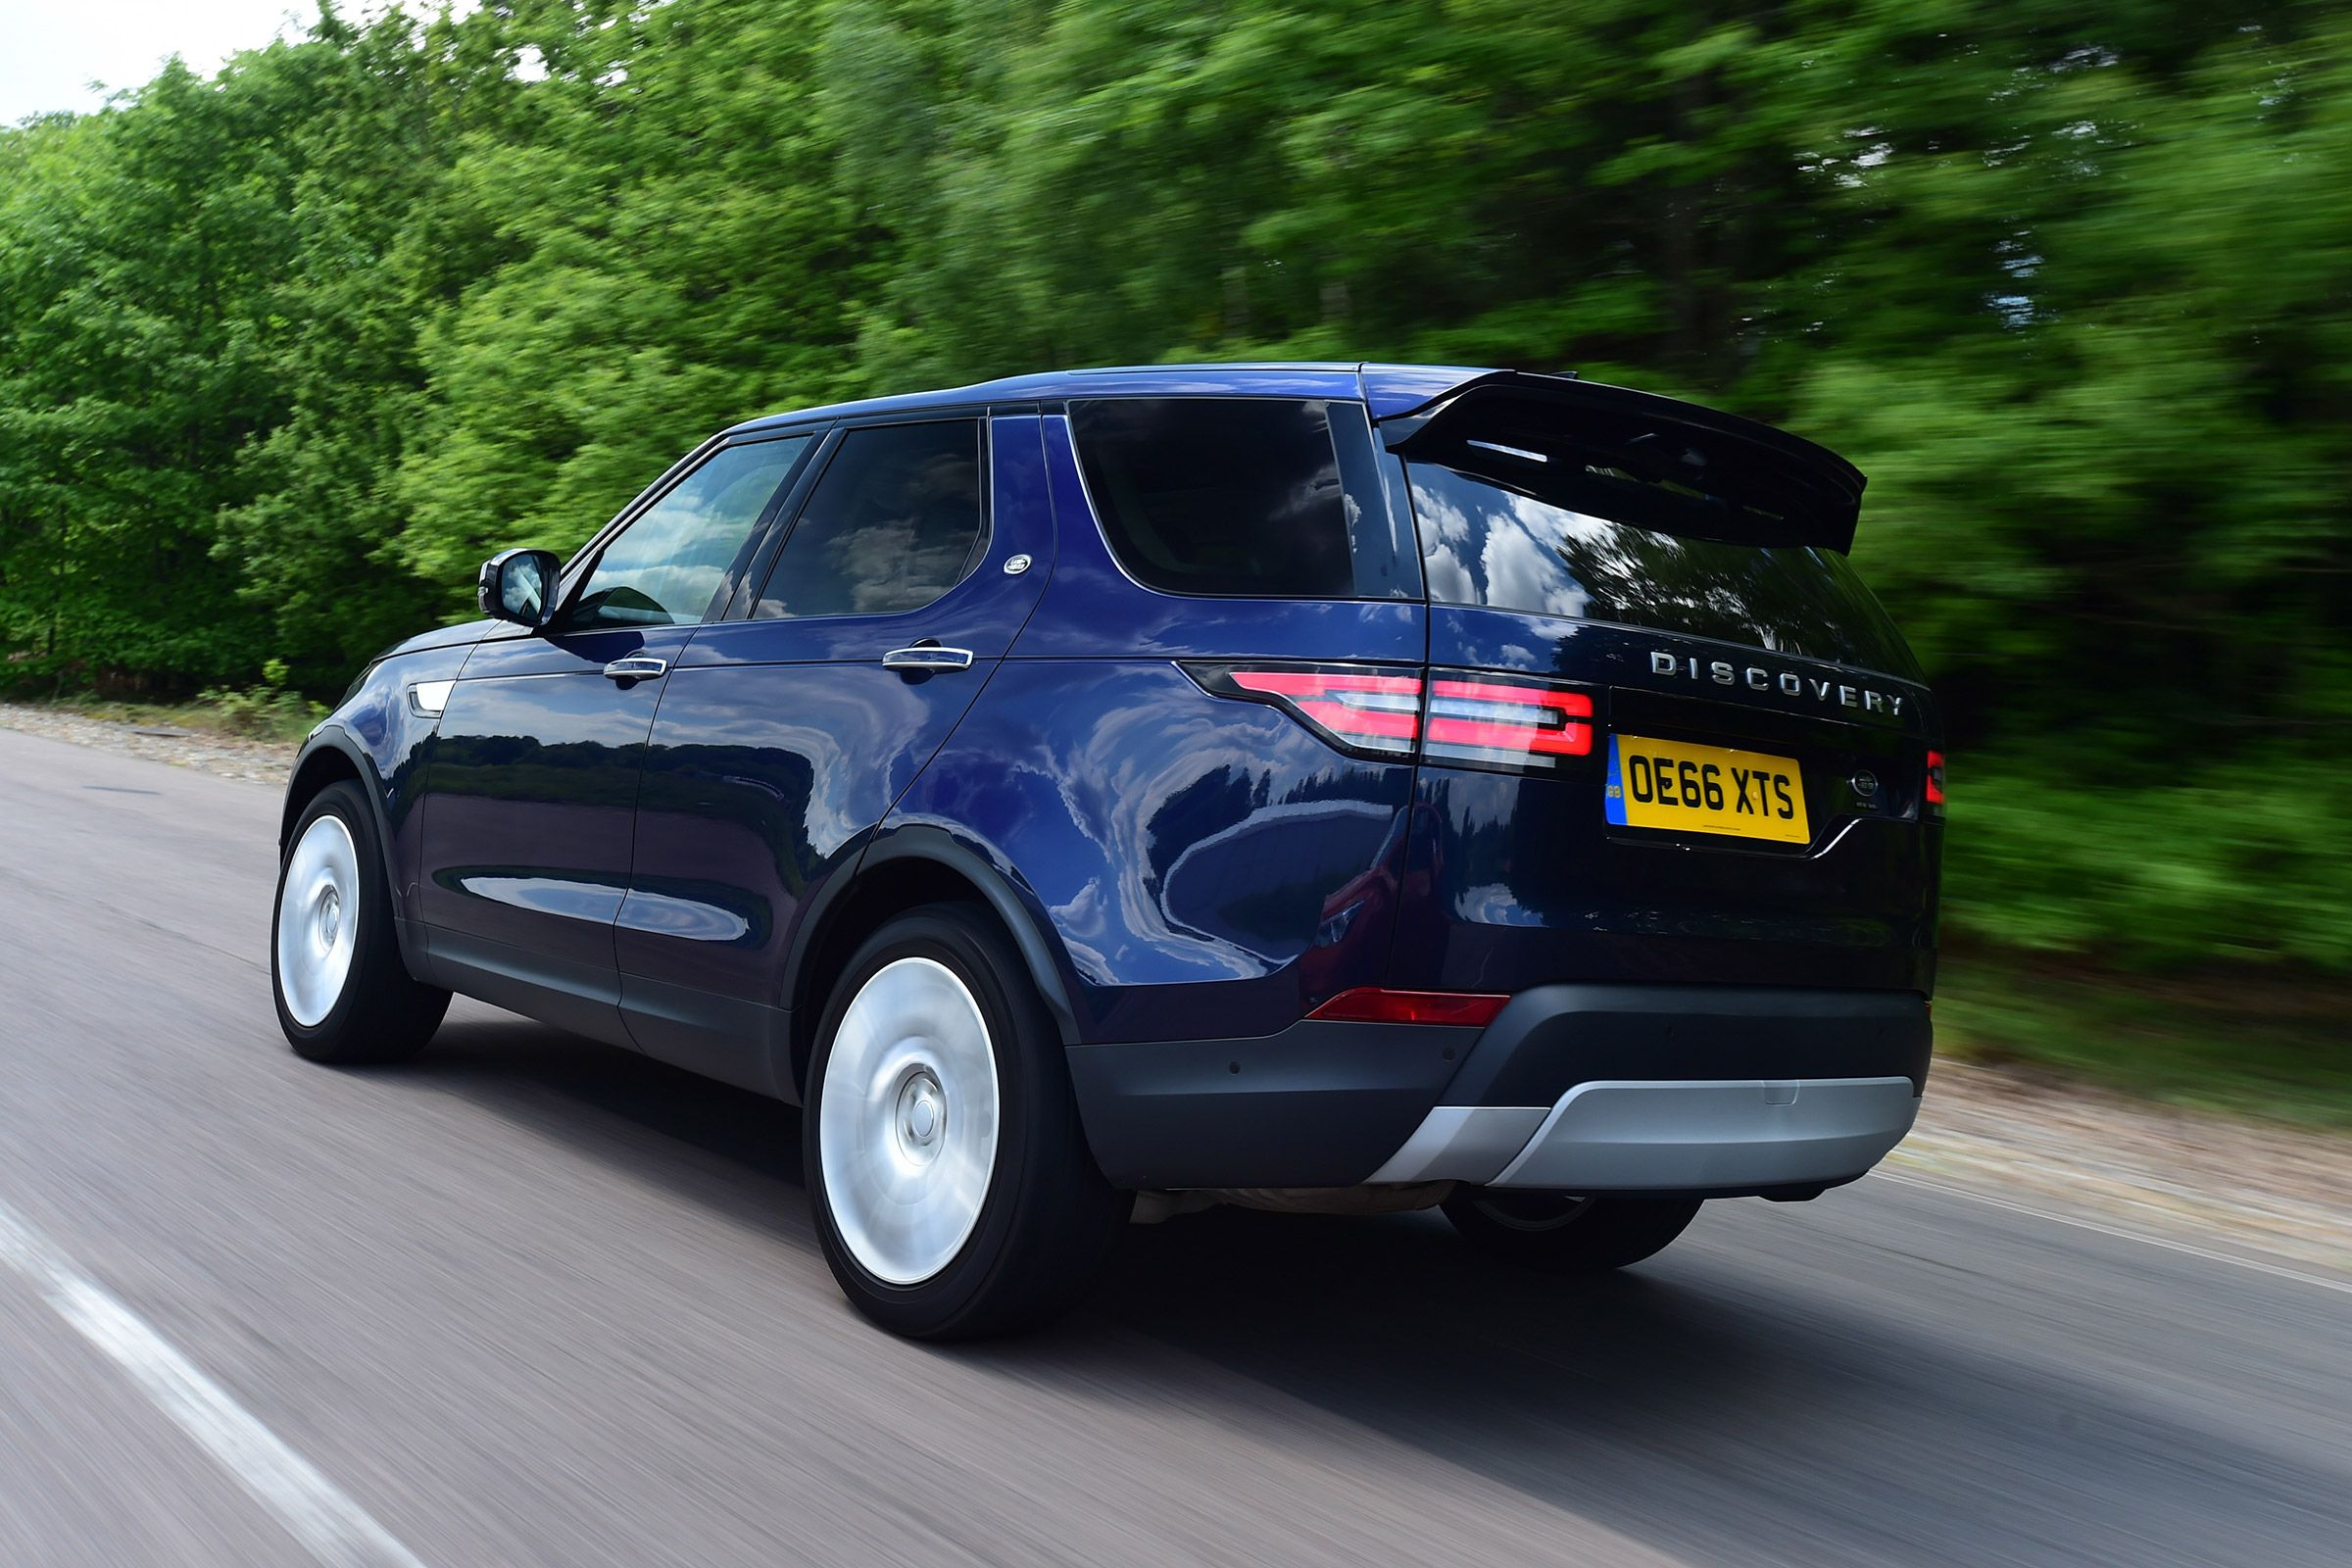 Punchy six cylinder sel Land Rover Discovery SUV arrives on